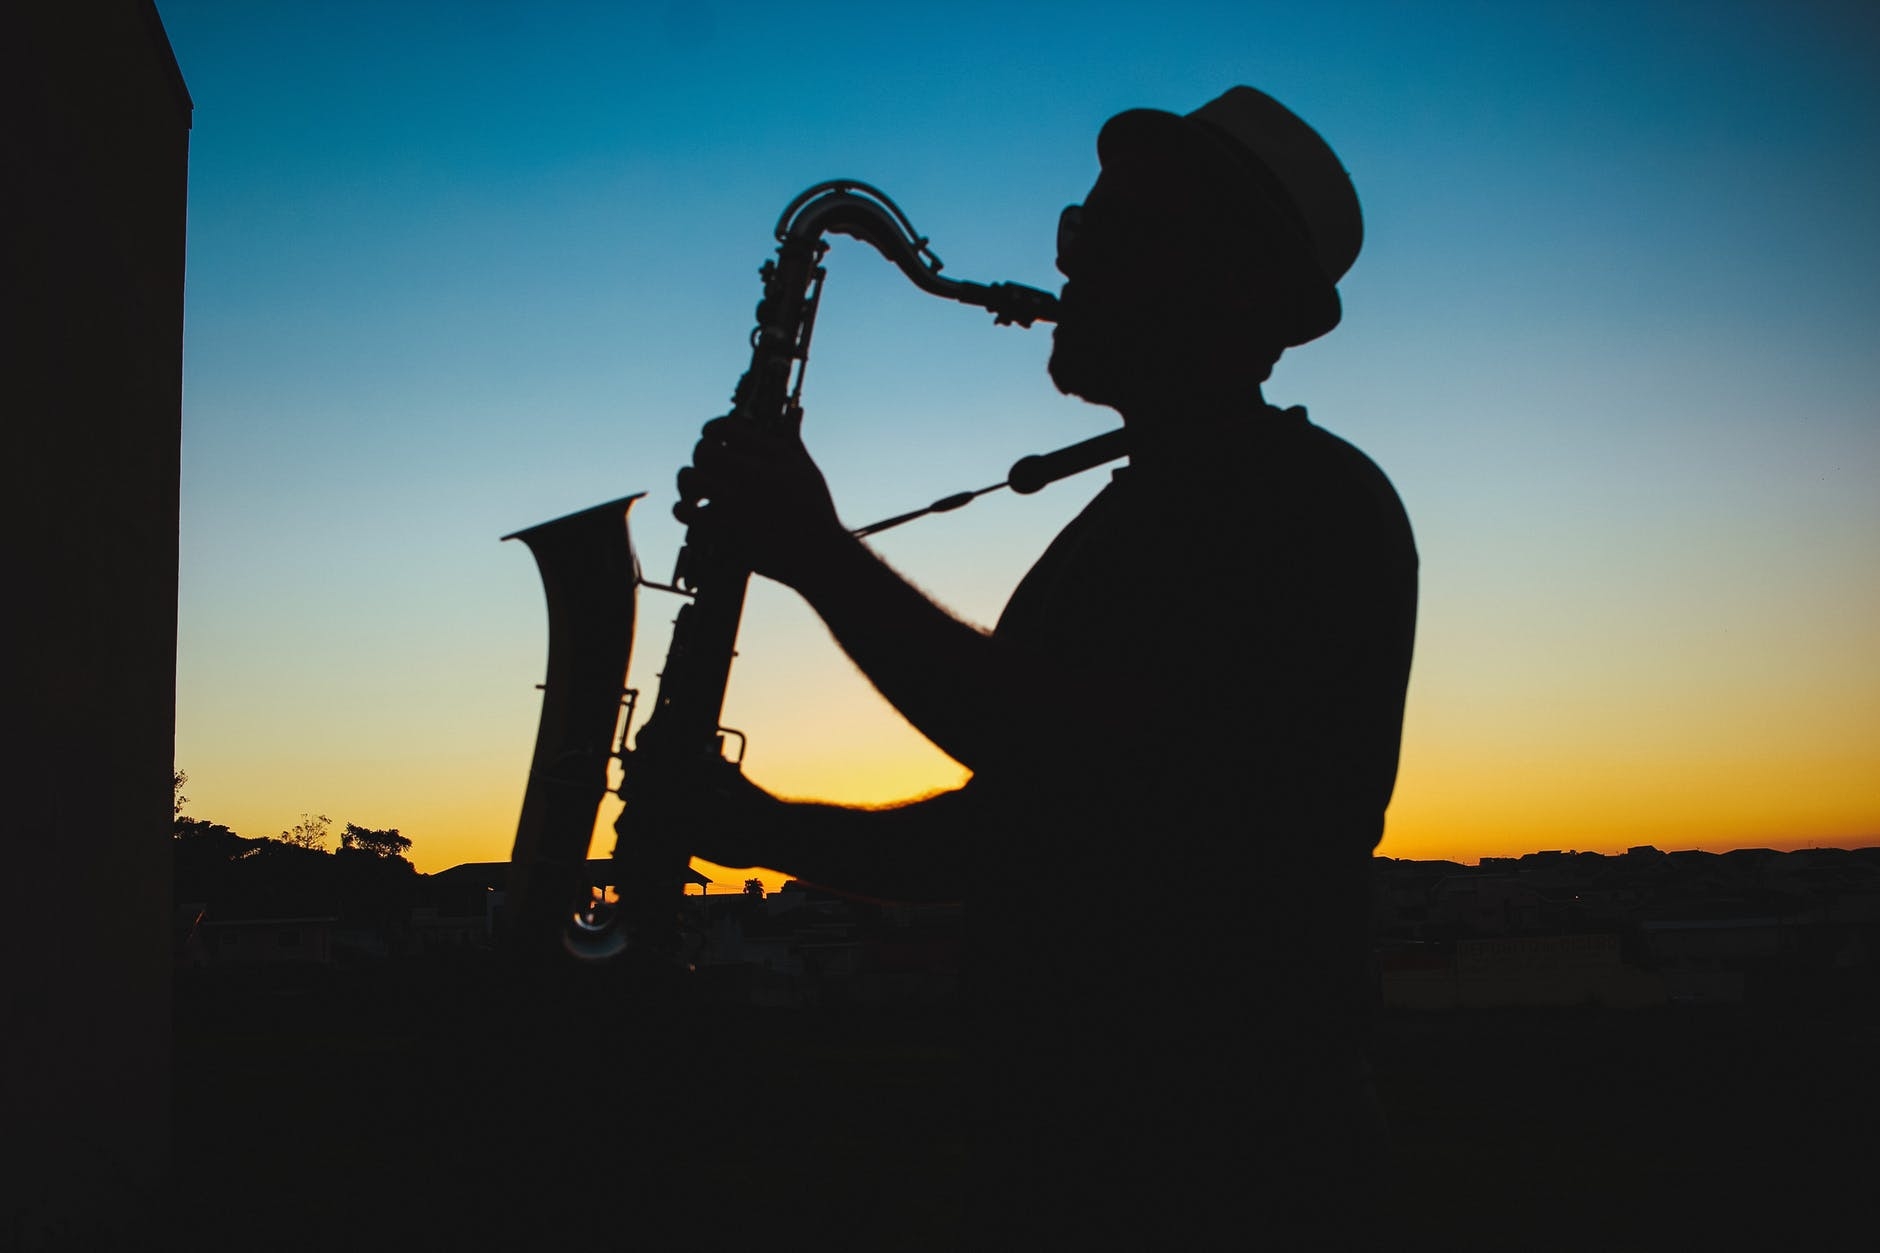 Free Summer Jazz Concert on the Great Lawn - The Parks